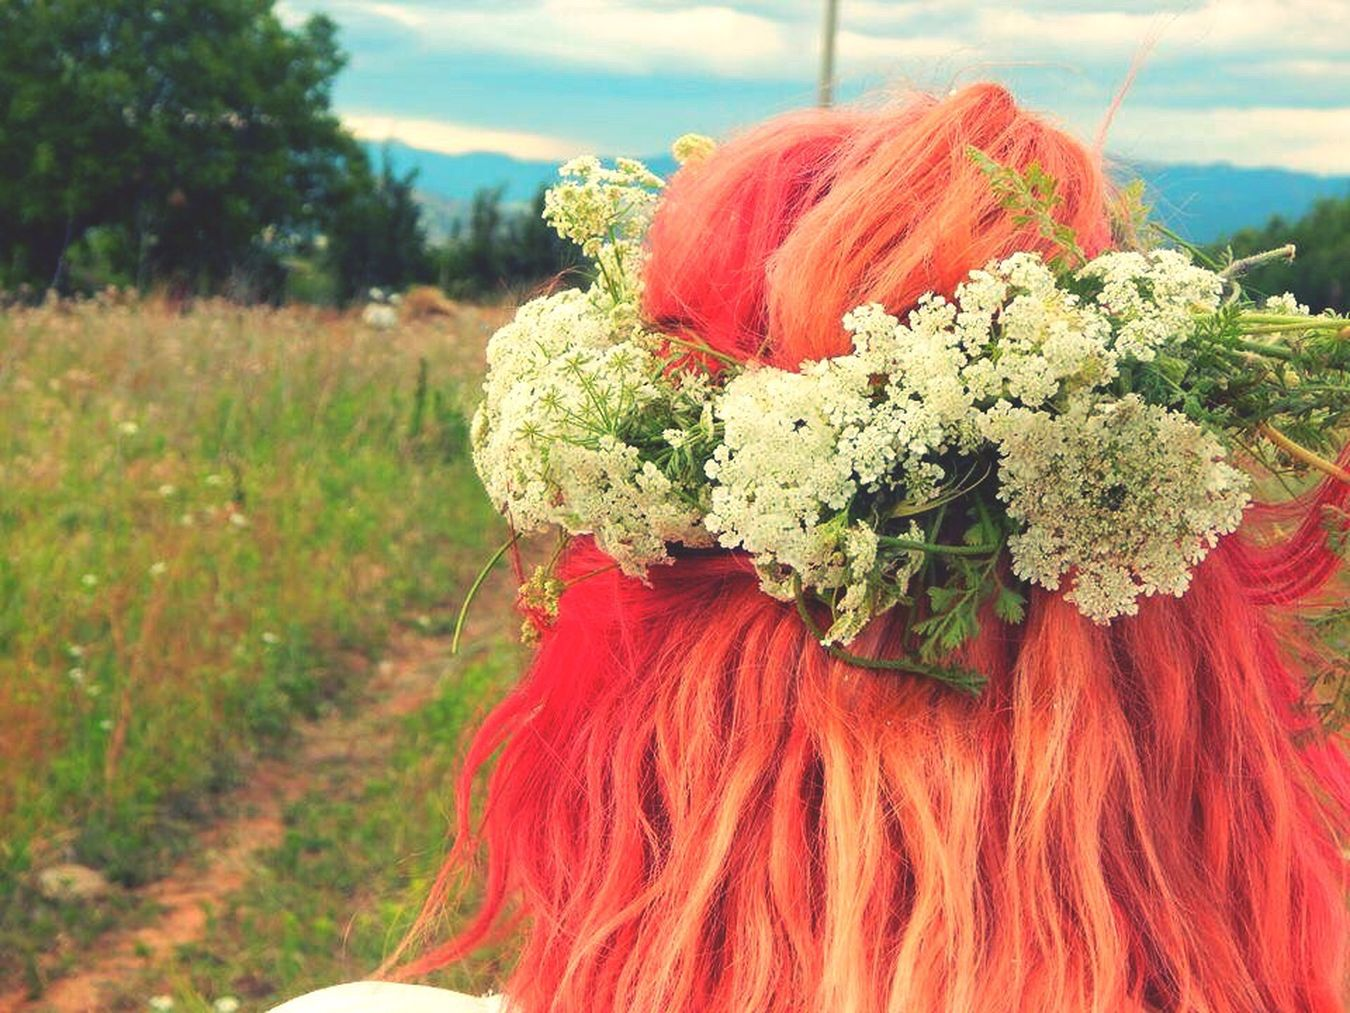 This Is Me RedHAIR ❤ Whiteflowers Flowerheadband Flowerheadban Nature Photography LoveNature Hippielife Hippie ✌ Lovethisplace Lovethispicture Pastel Power